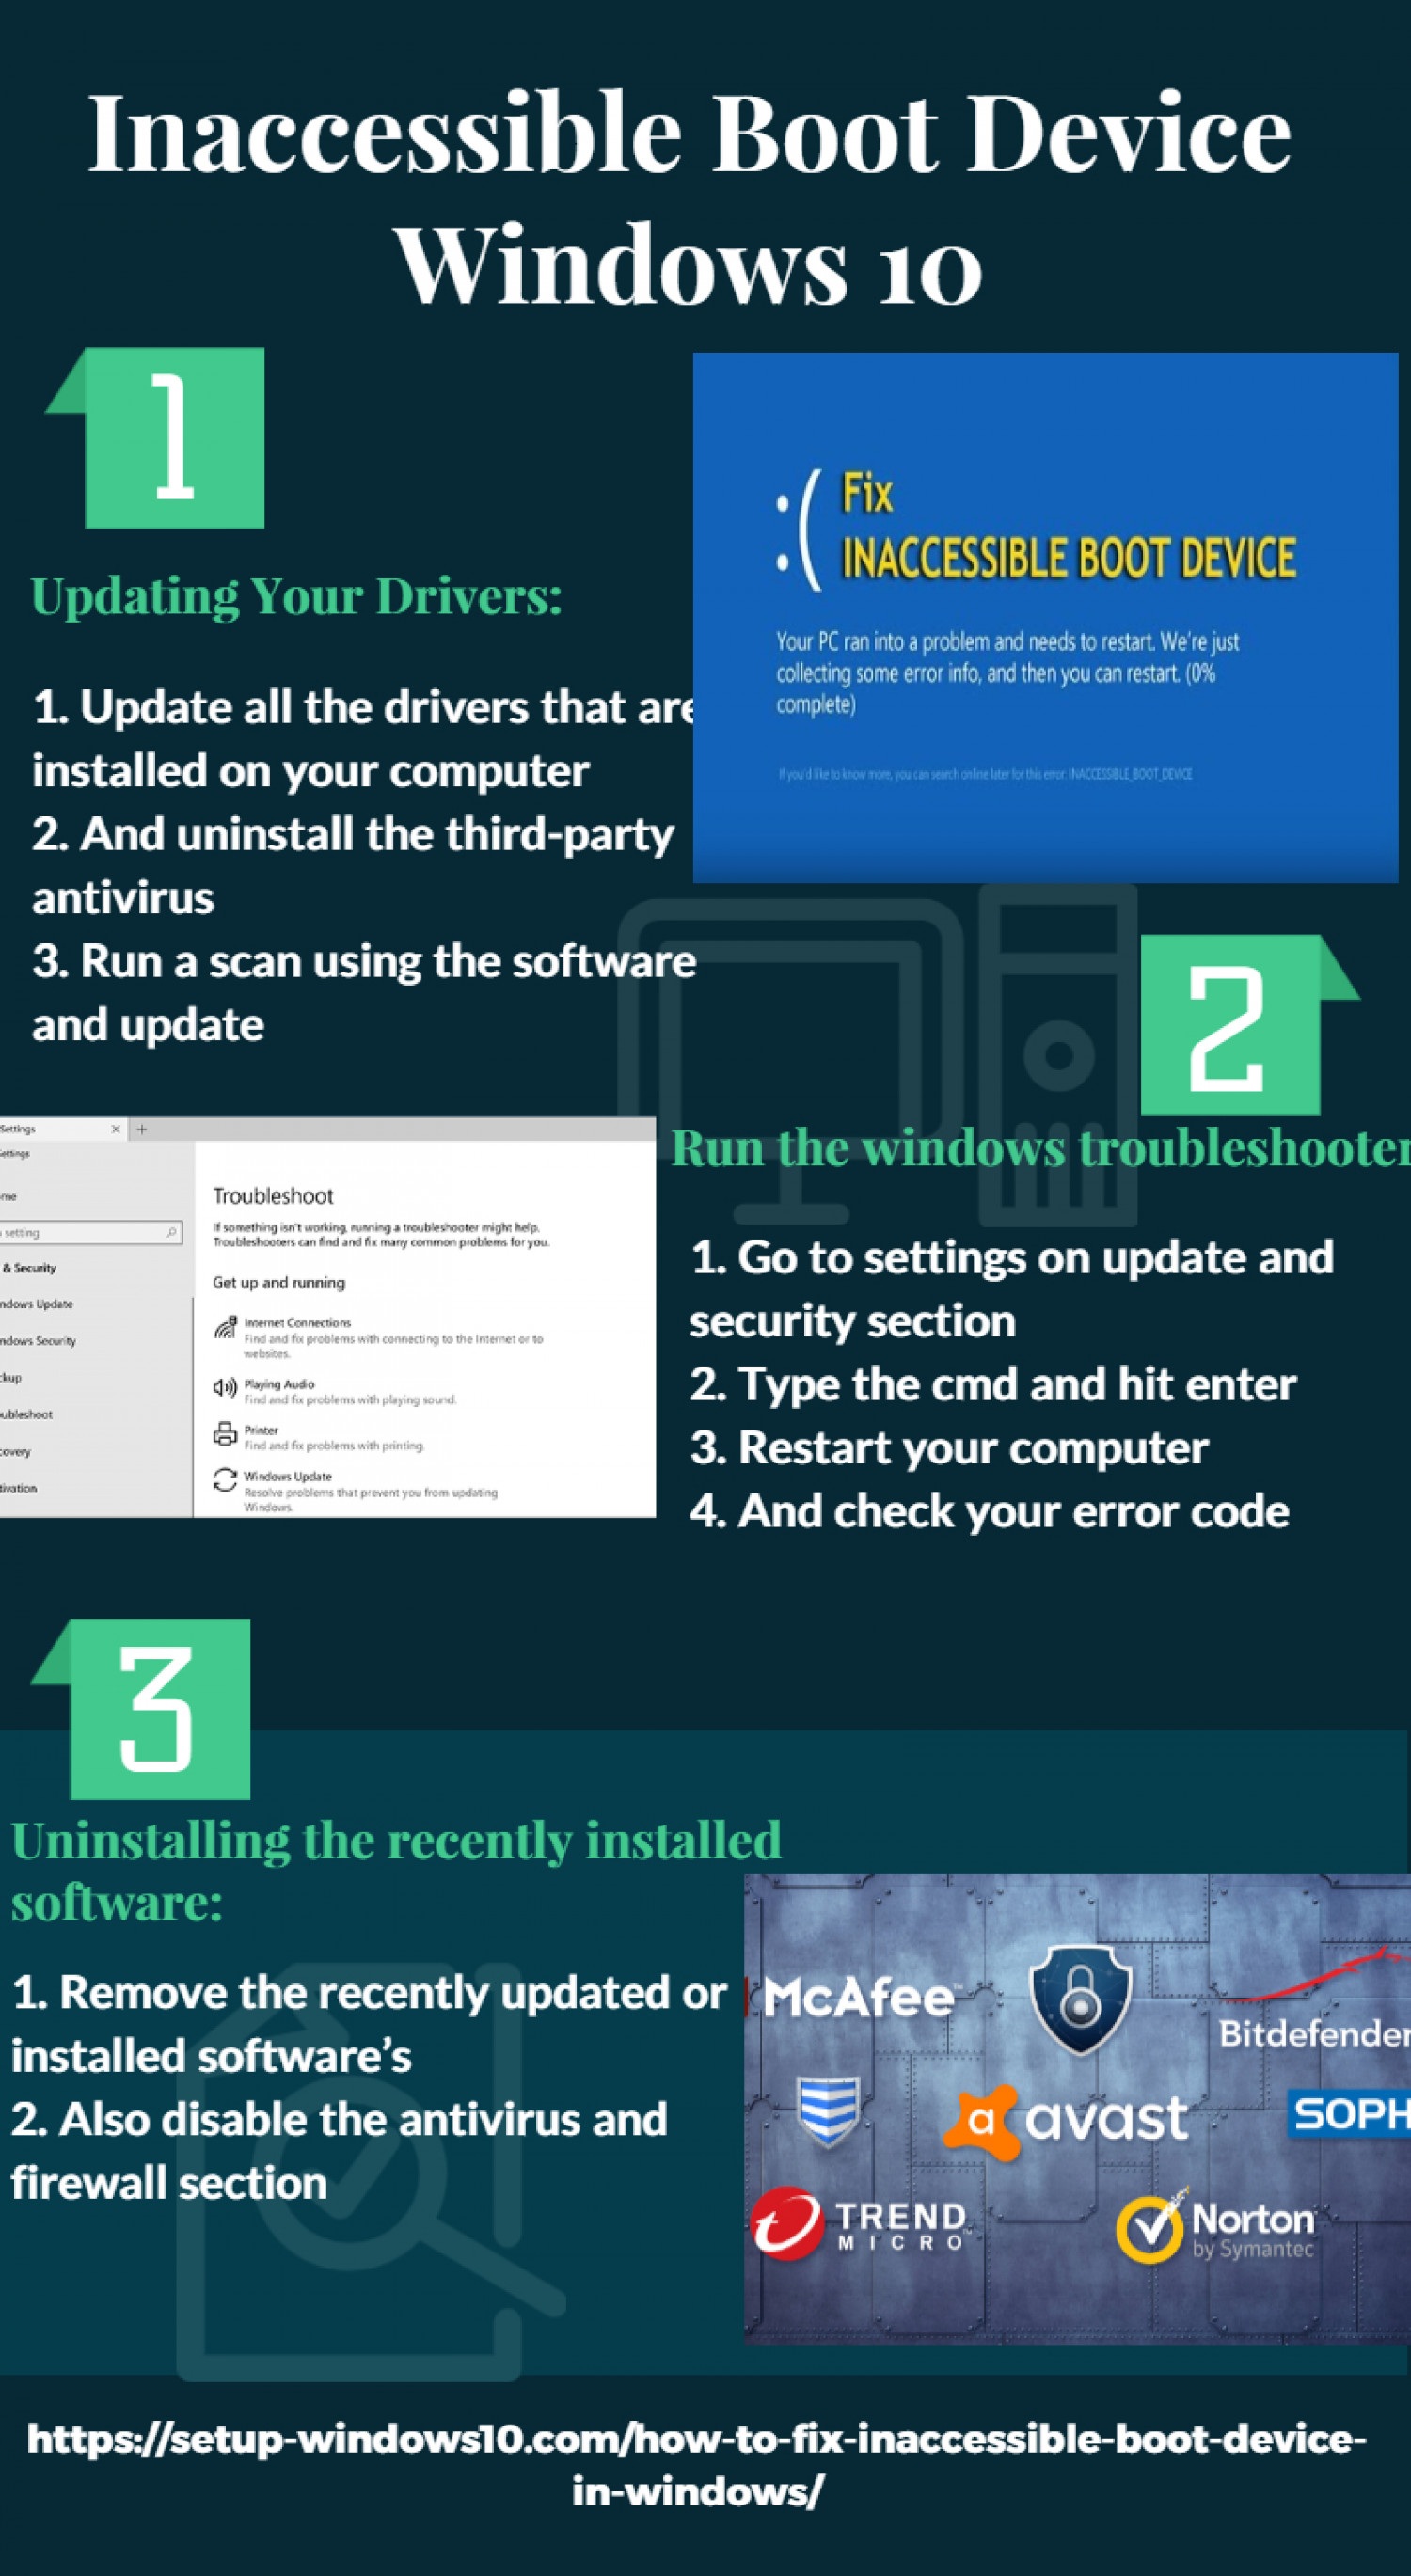 Inaccessible Boot Device In Windows 10 Infographic